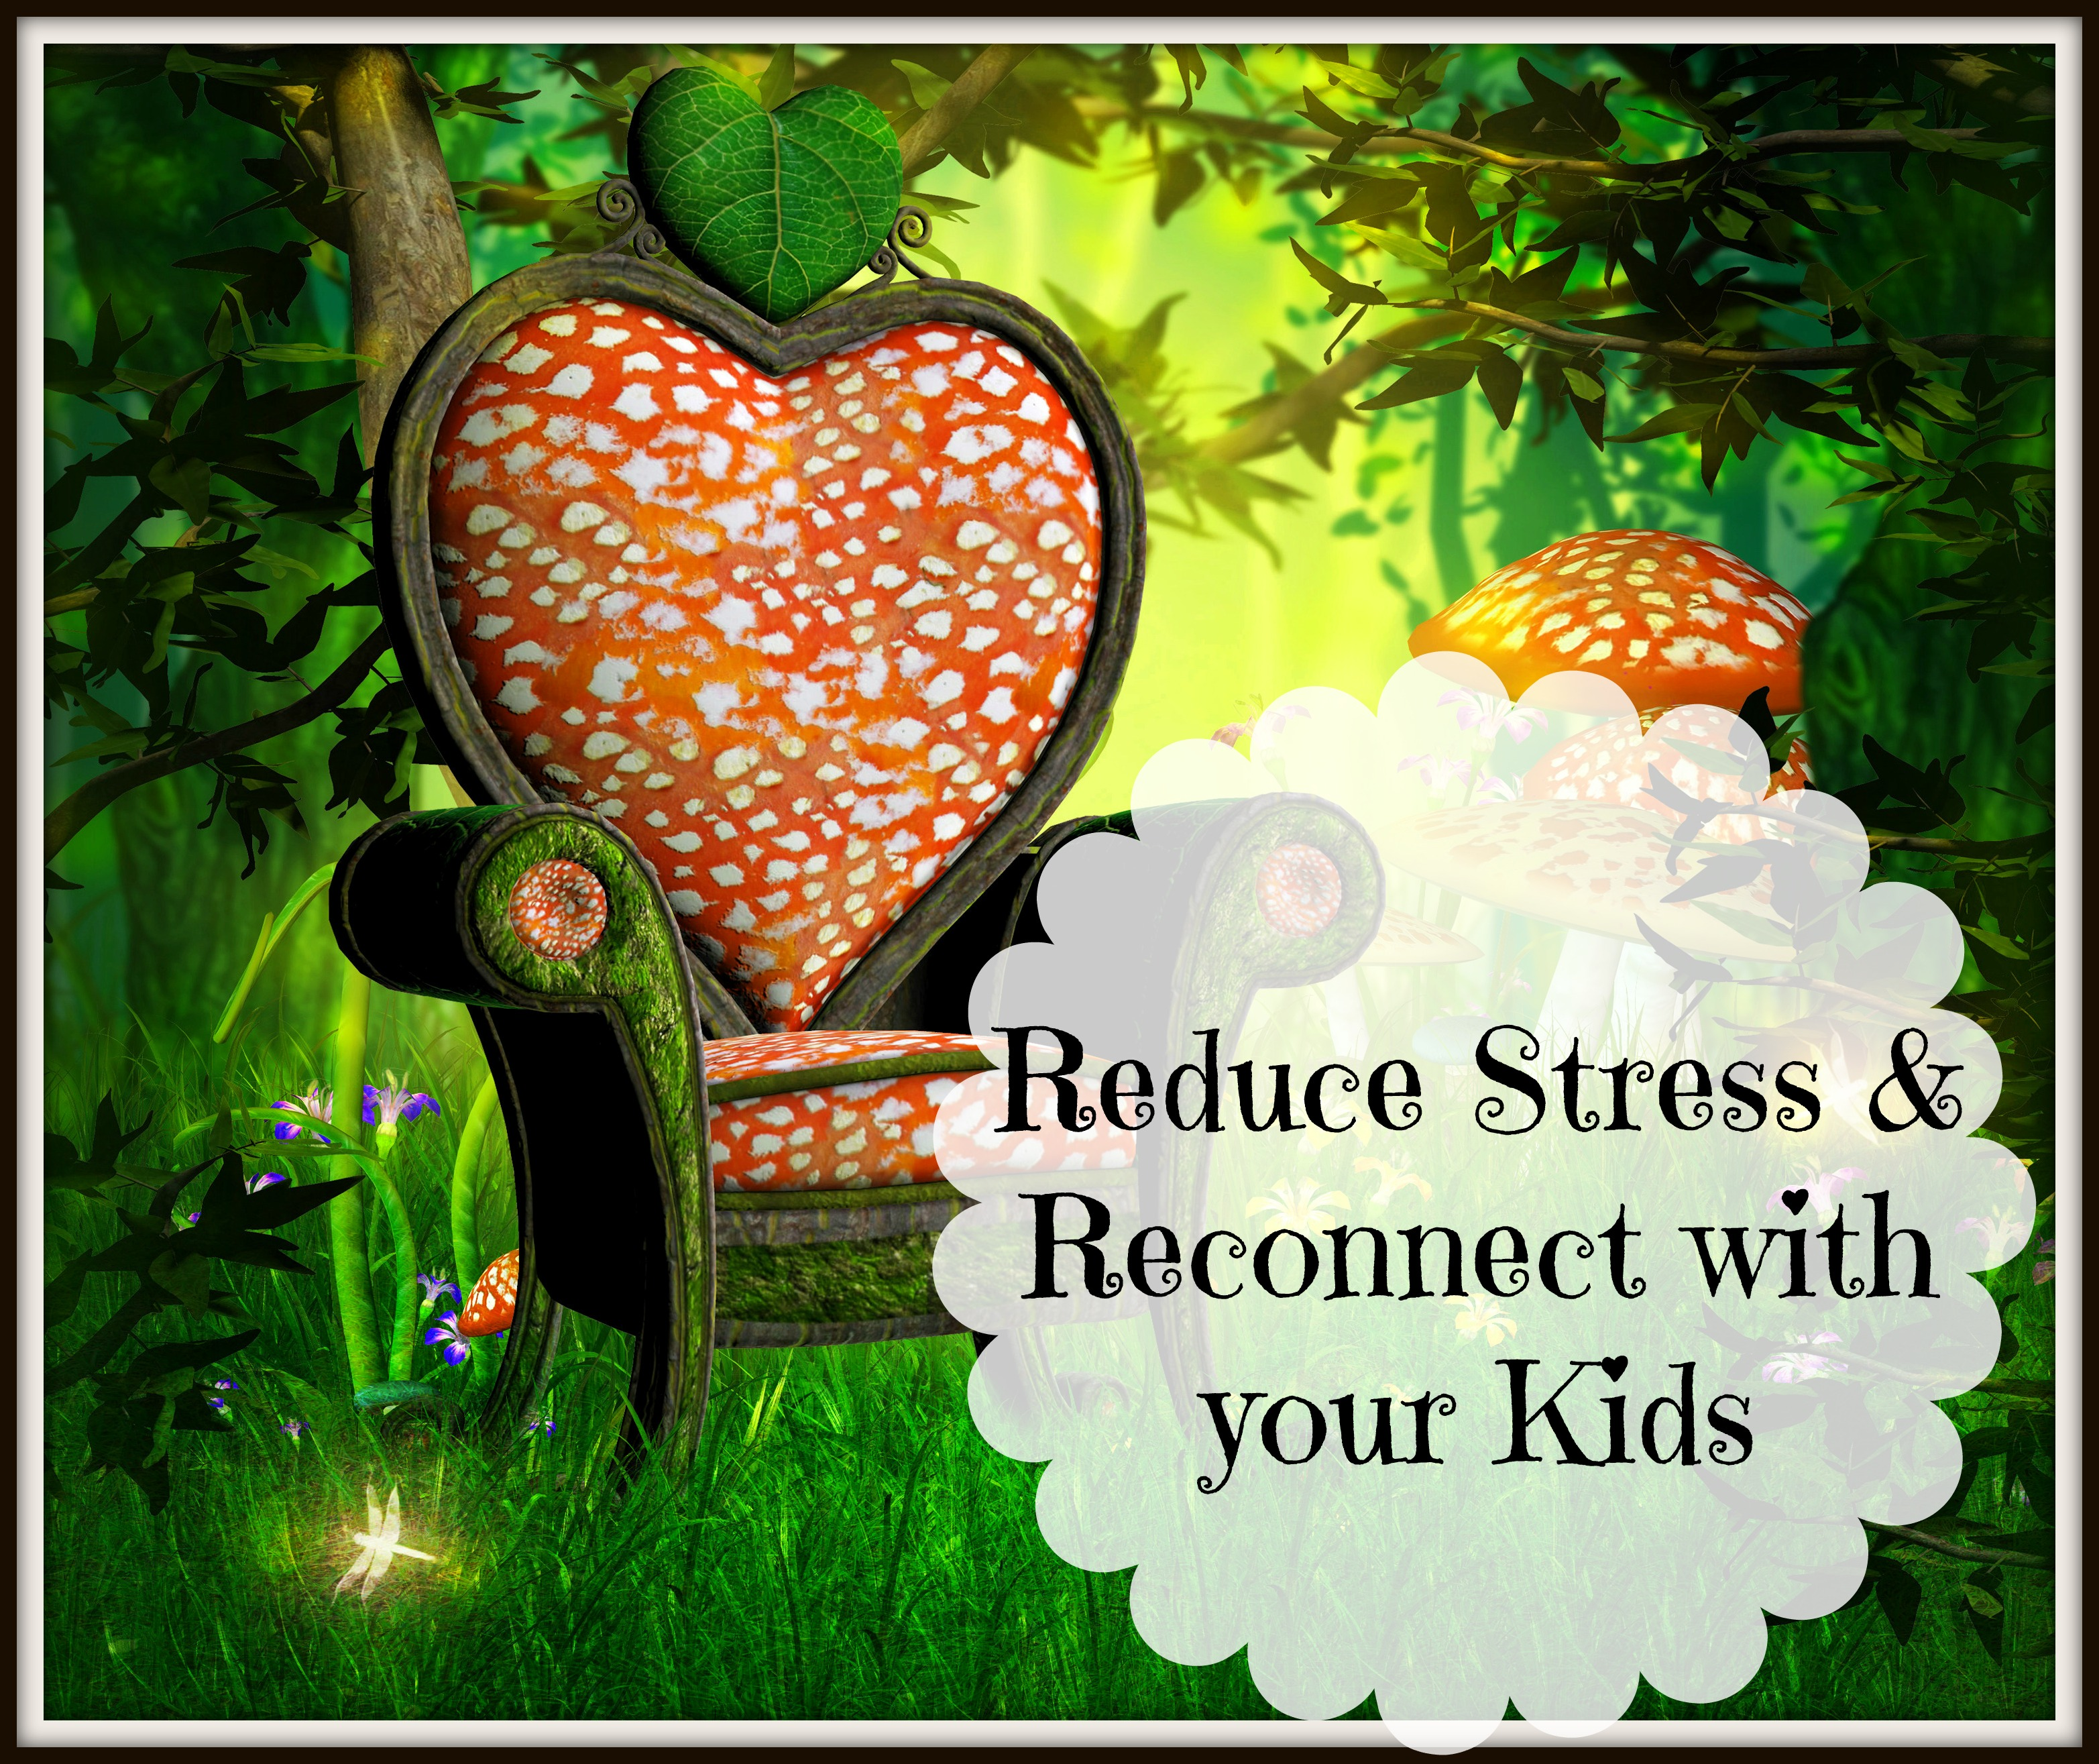 Reduce Stress and Reconnect with your Kids